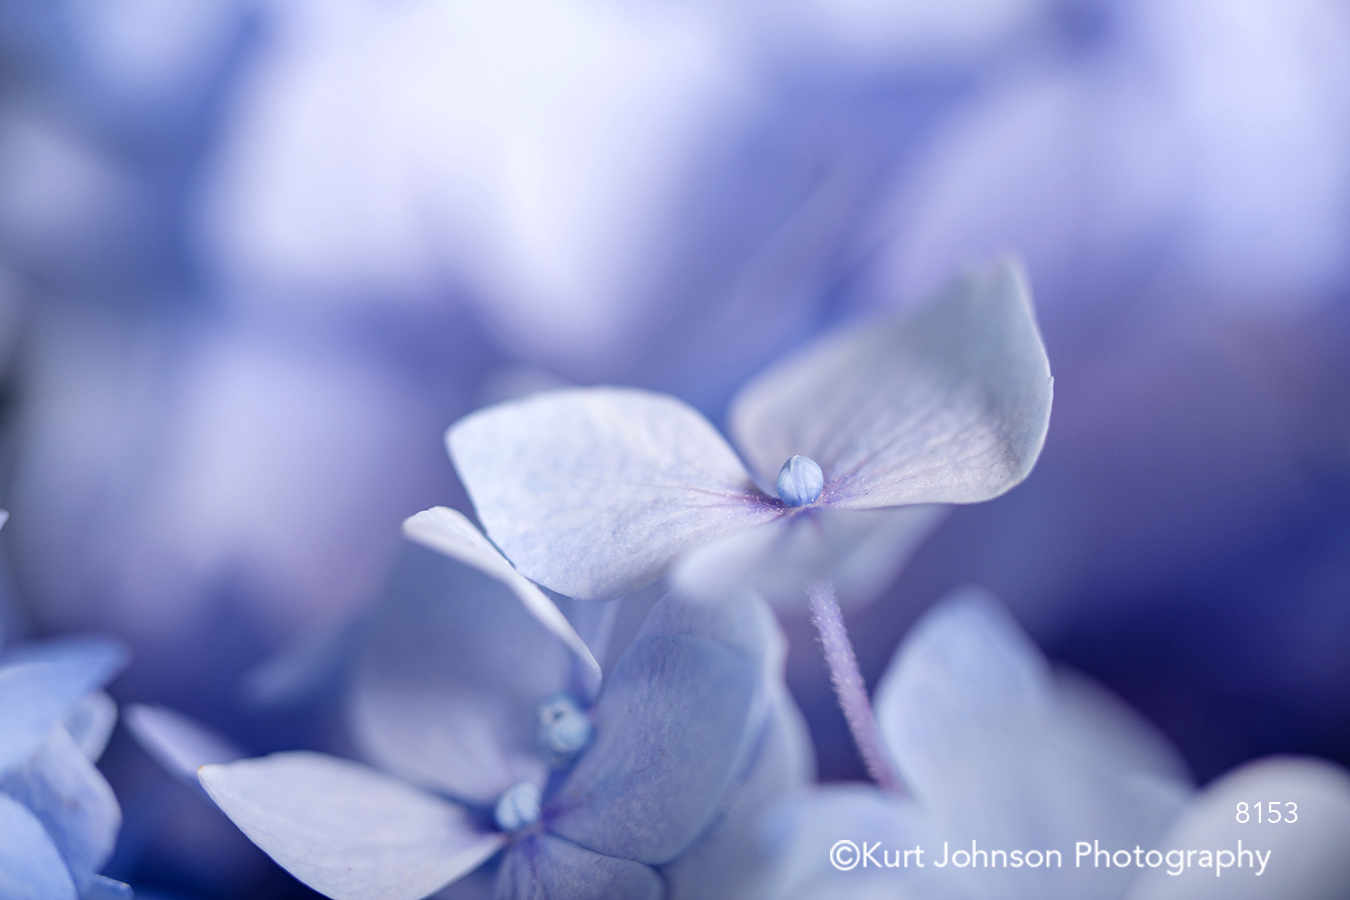 purple lavender blue hydrangea flowers petals delicate detail close up macro